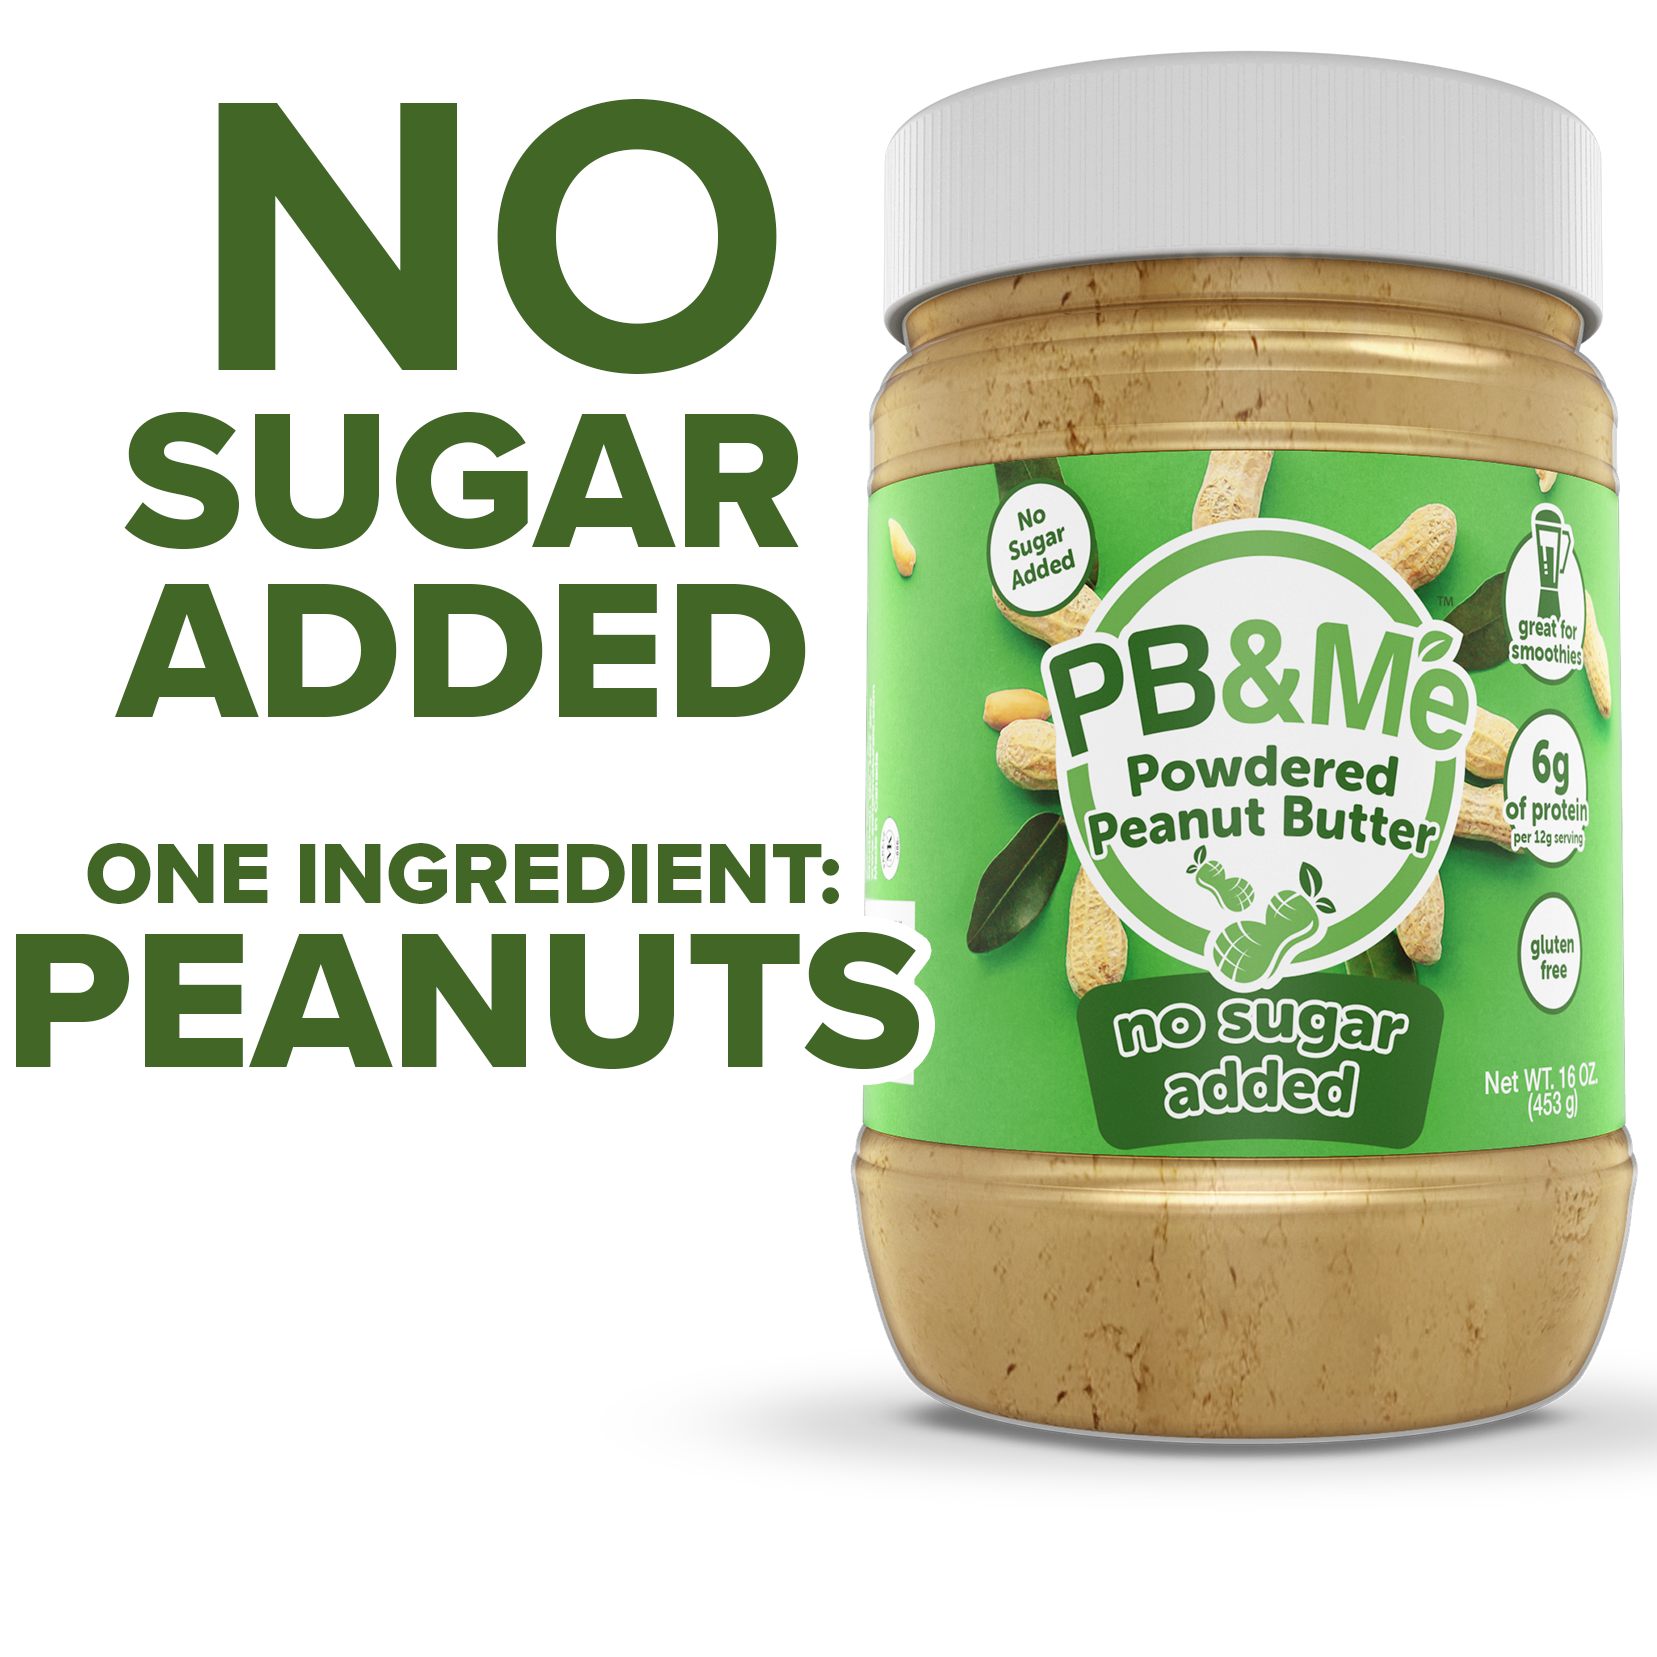 PB&Me - Powdered Peanut Butter - No Sugar Added (1LB)